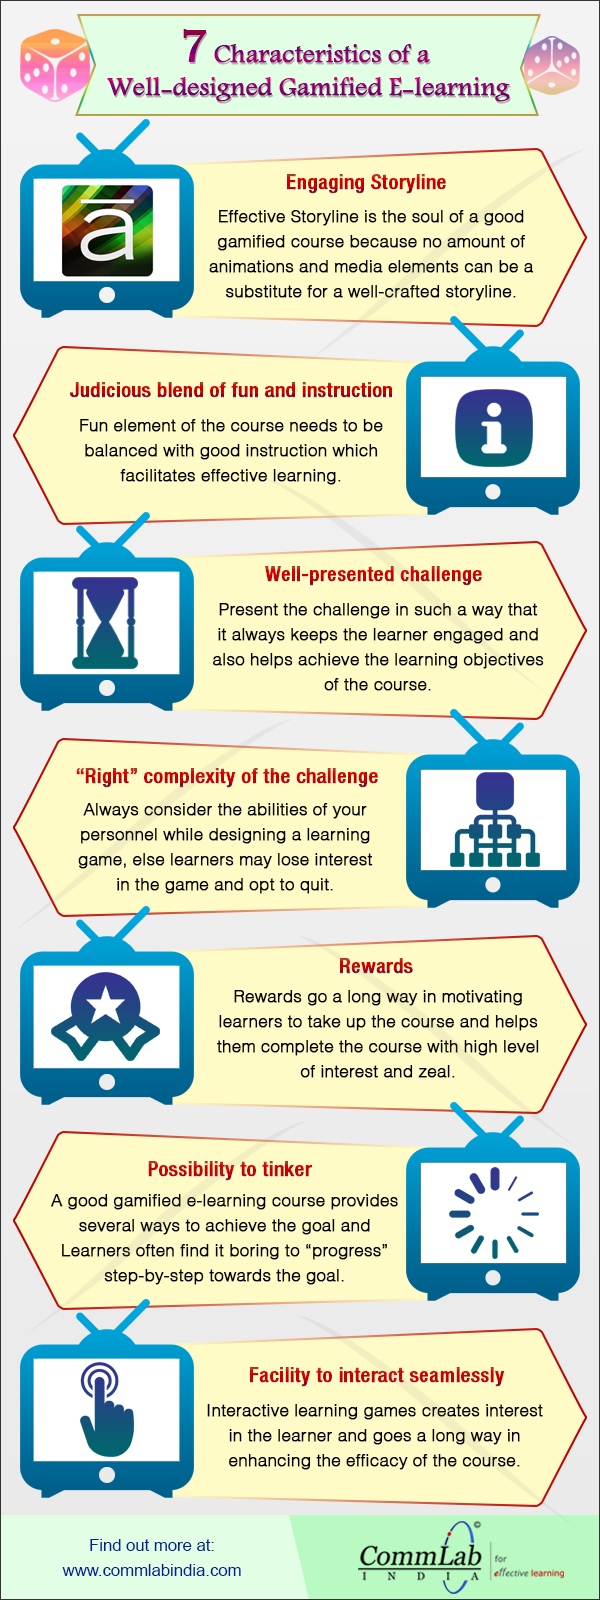 7 Characteristics Of A Well-Designed Gamified E-Learning [Infographic]